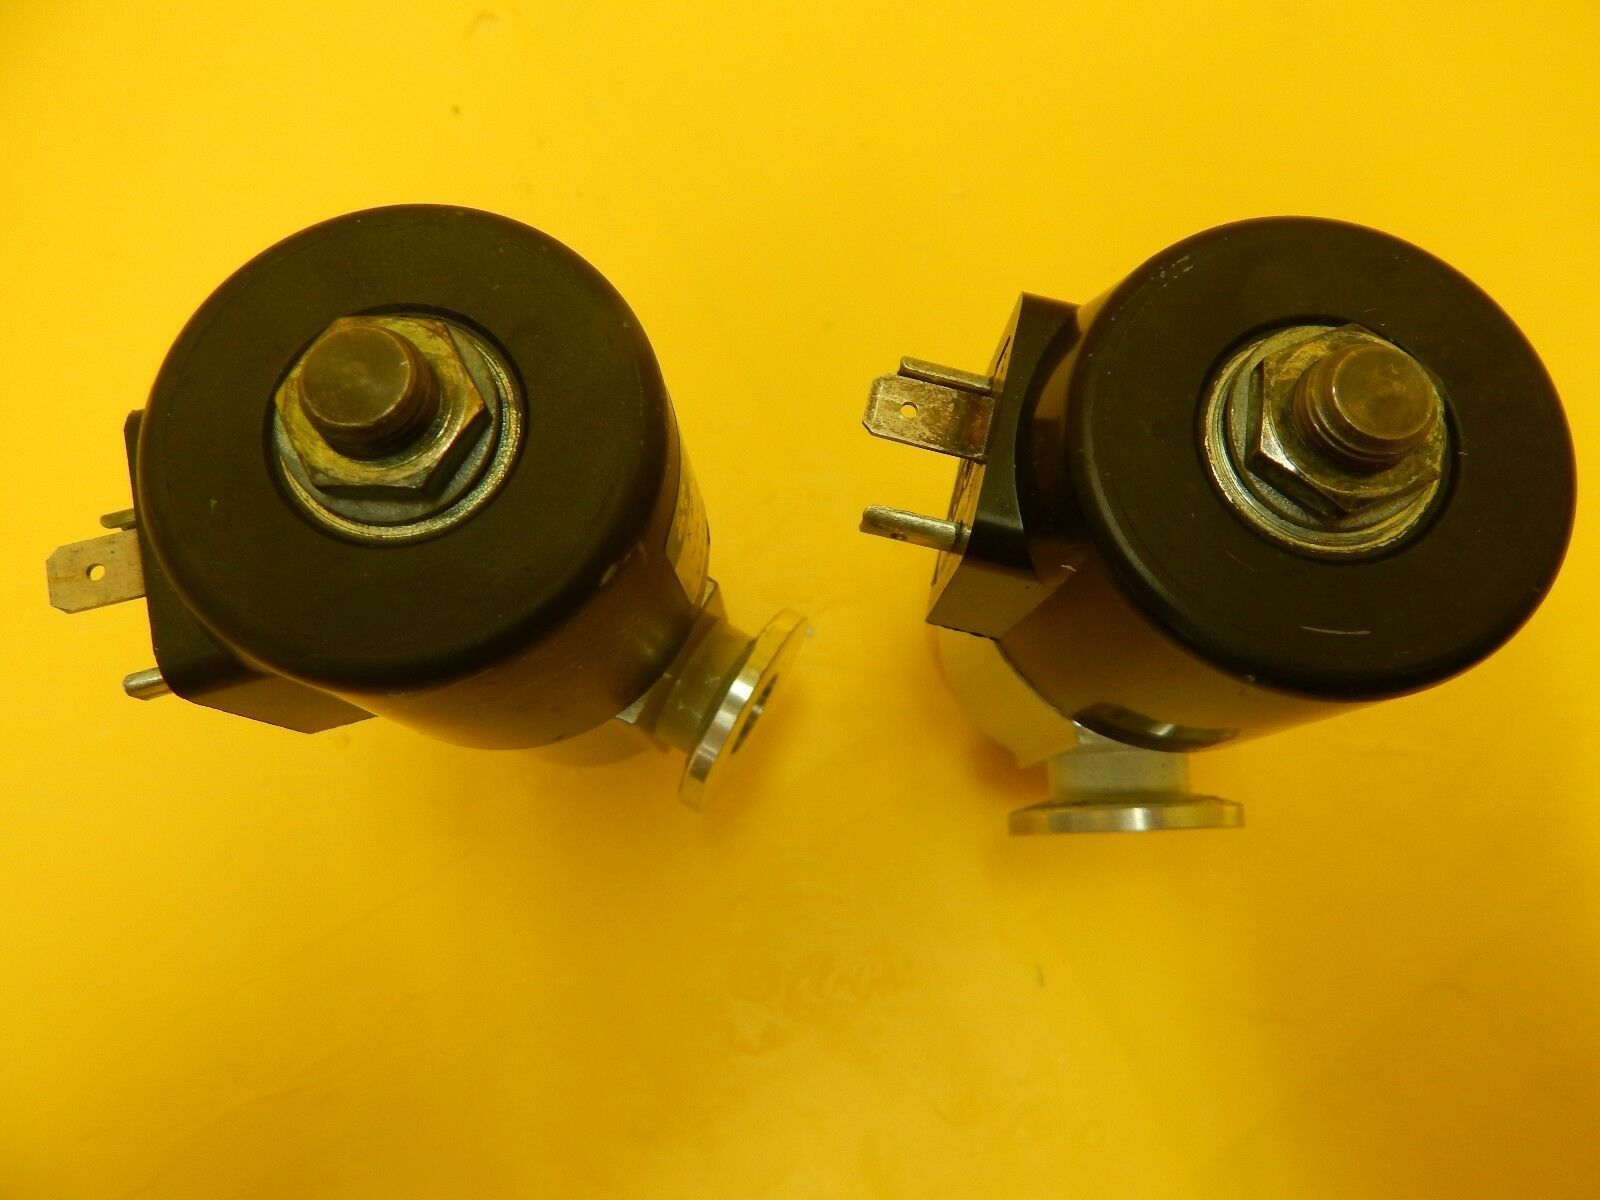 Magnet-Schultz XAPX044K54D11 Vacuum Switch Balxers EVC 010 M Lot of 2 Used